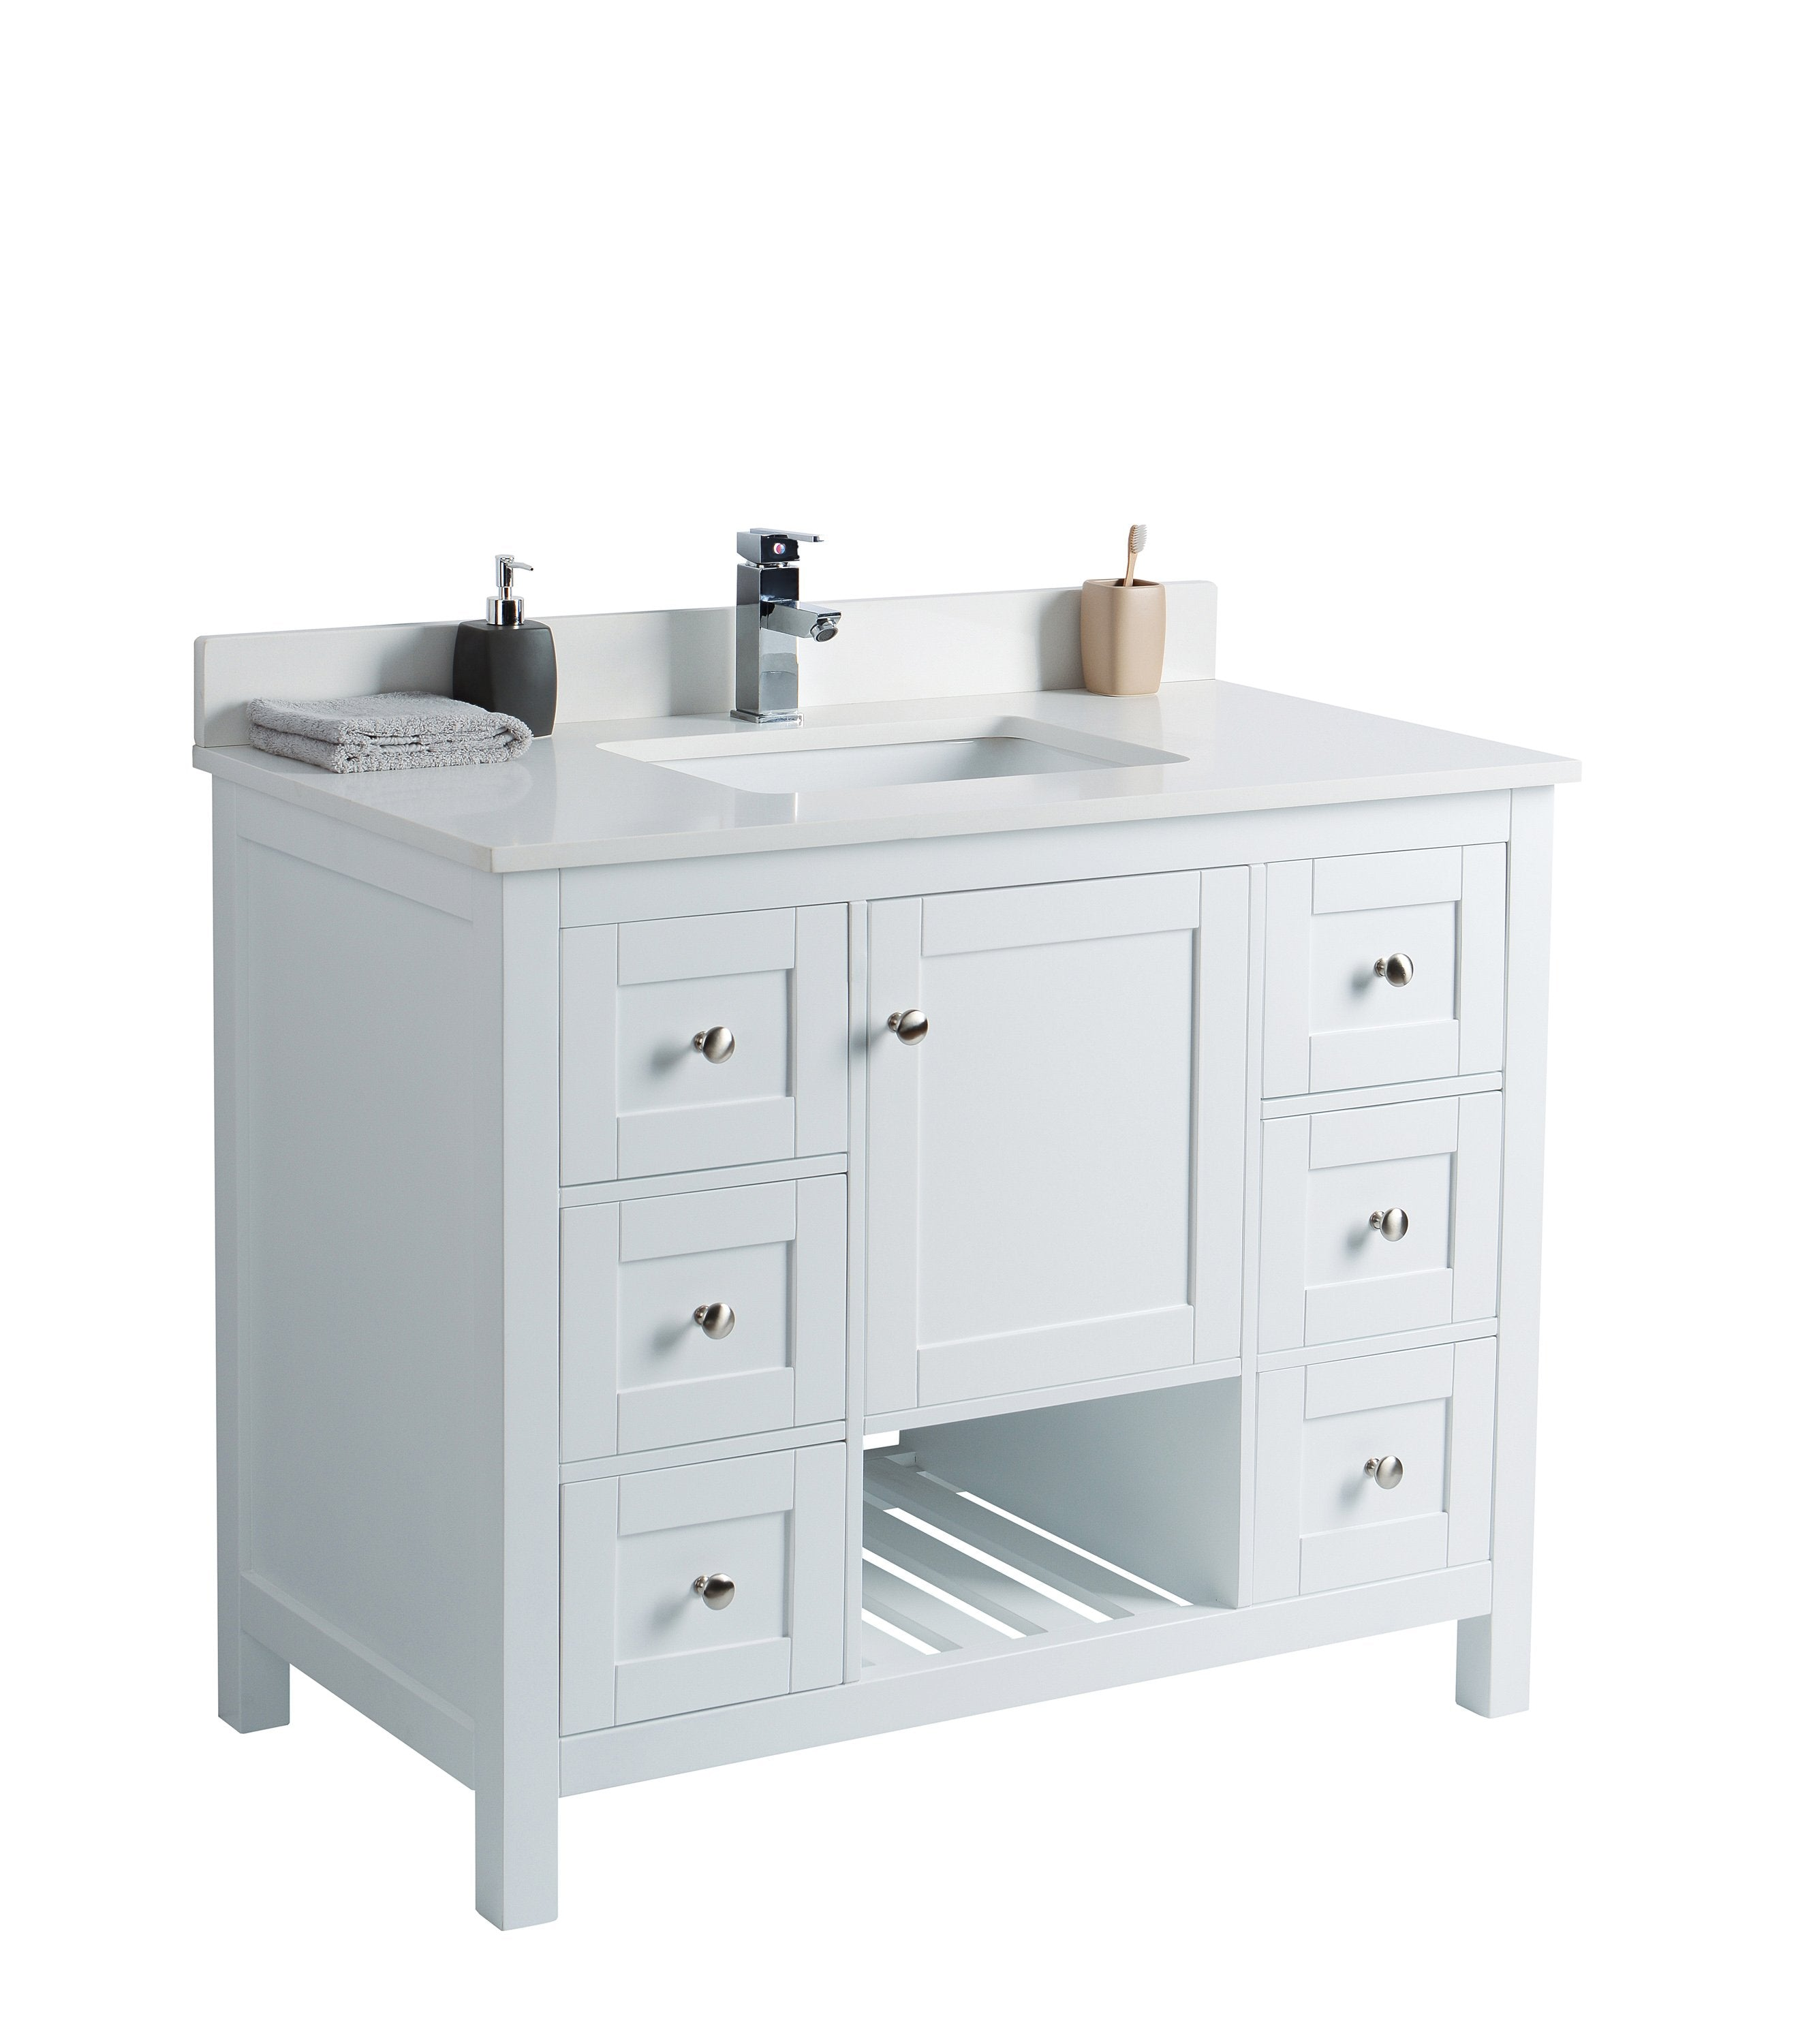 design transitional carrera white awesome top bathroom x karobarmart marble vanity com with inch